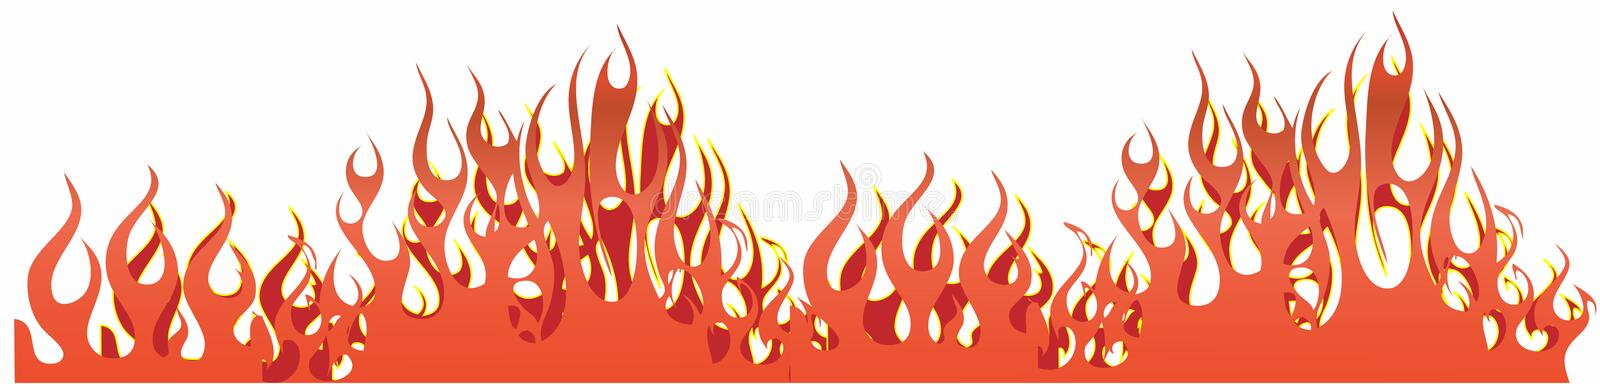 Fiamme illustrazione di stock